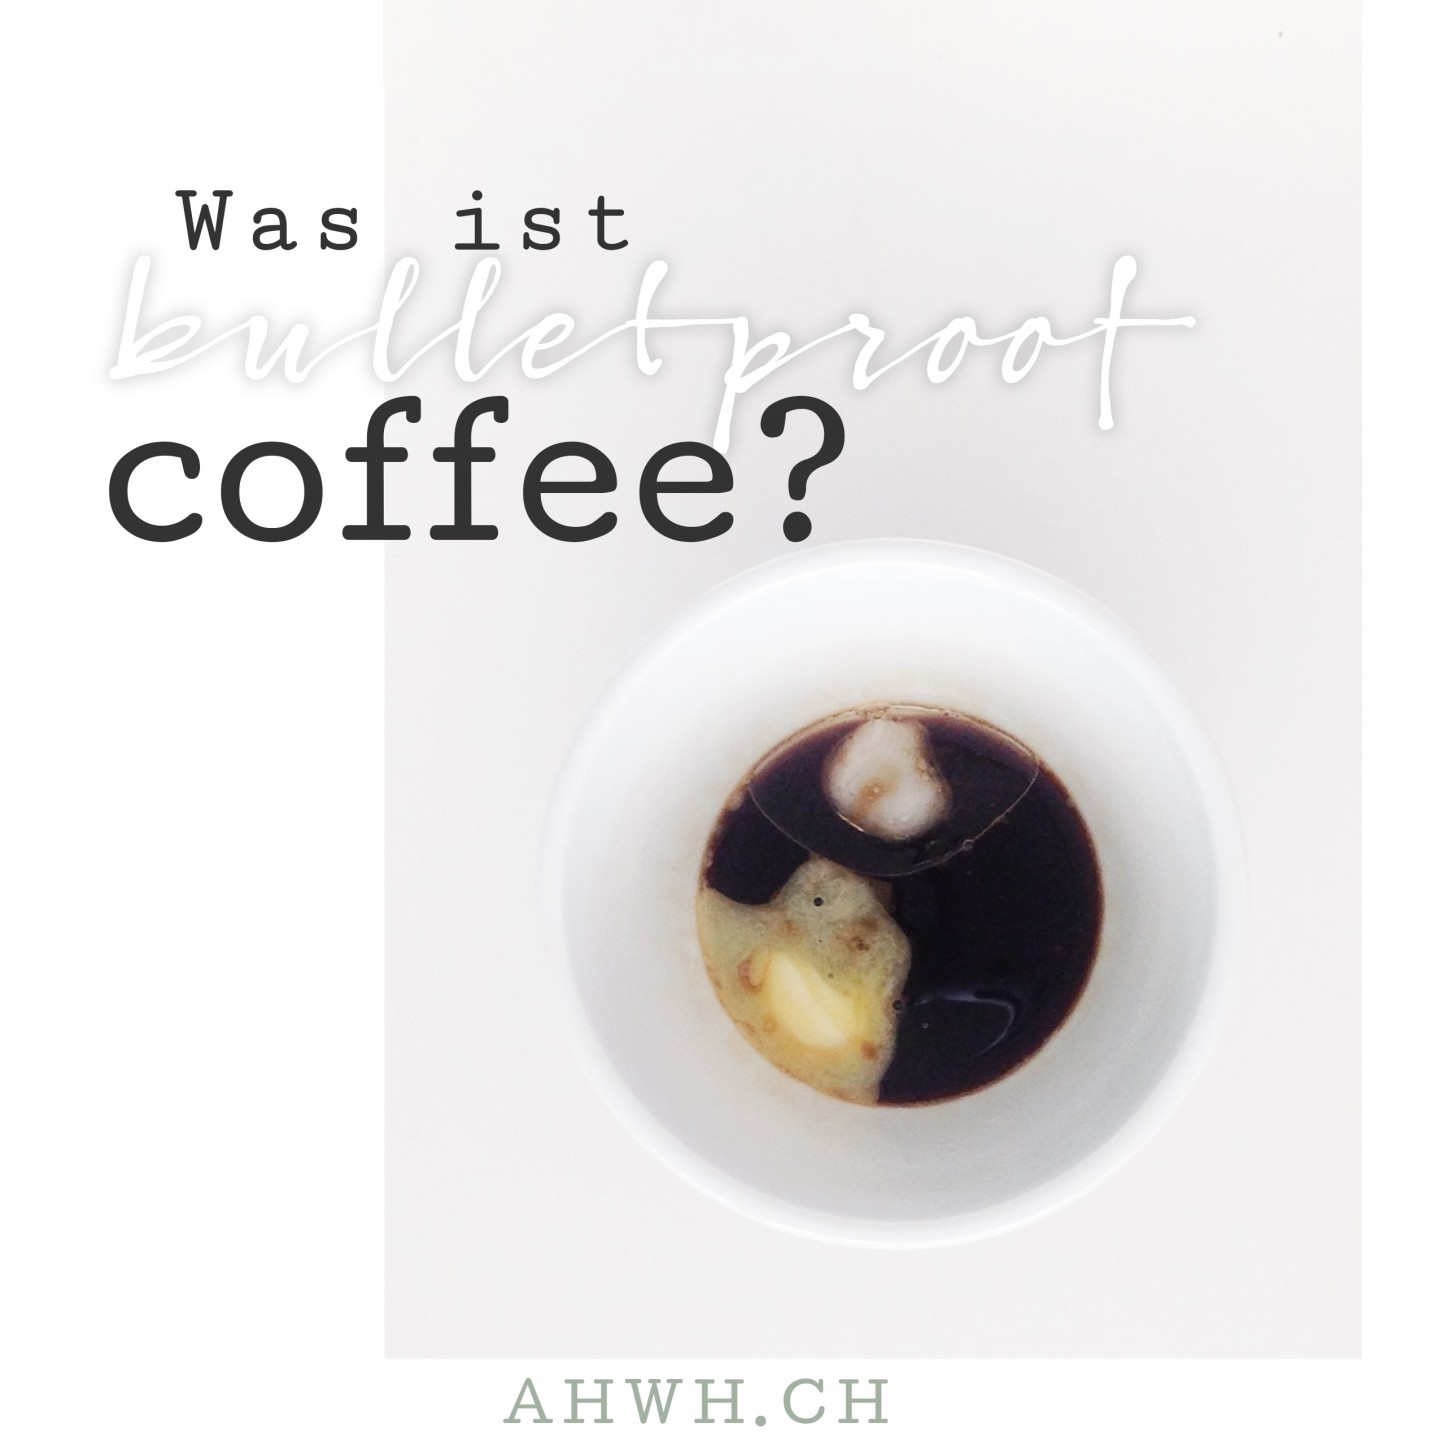 Was ist bulletproof coffee? by ahwh.ch